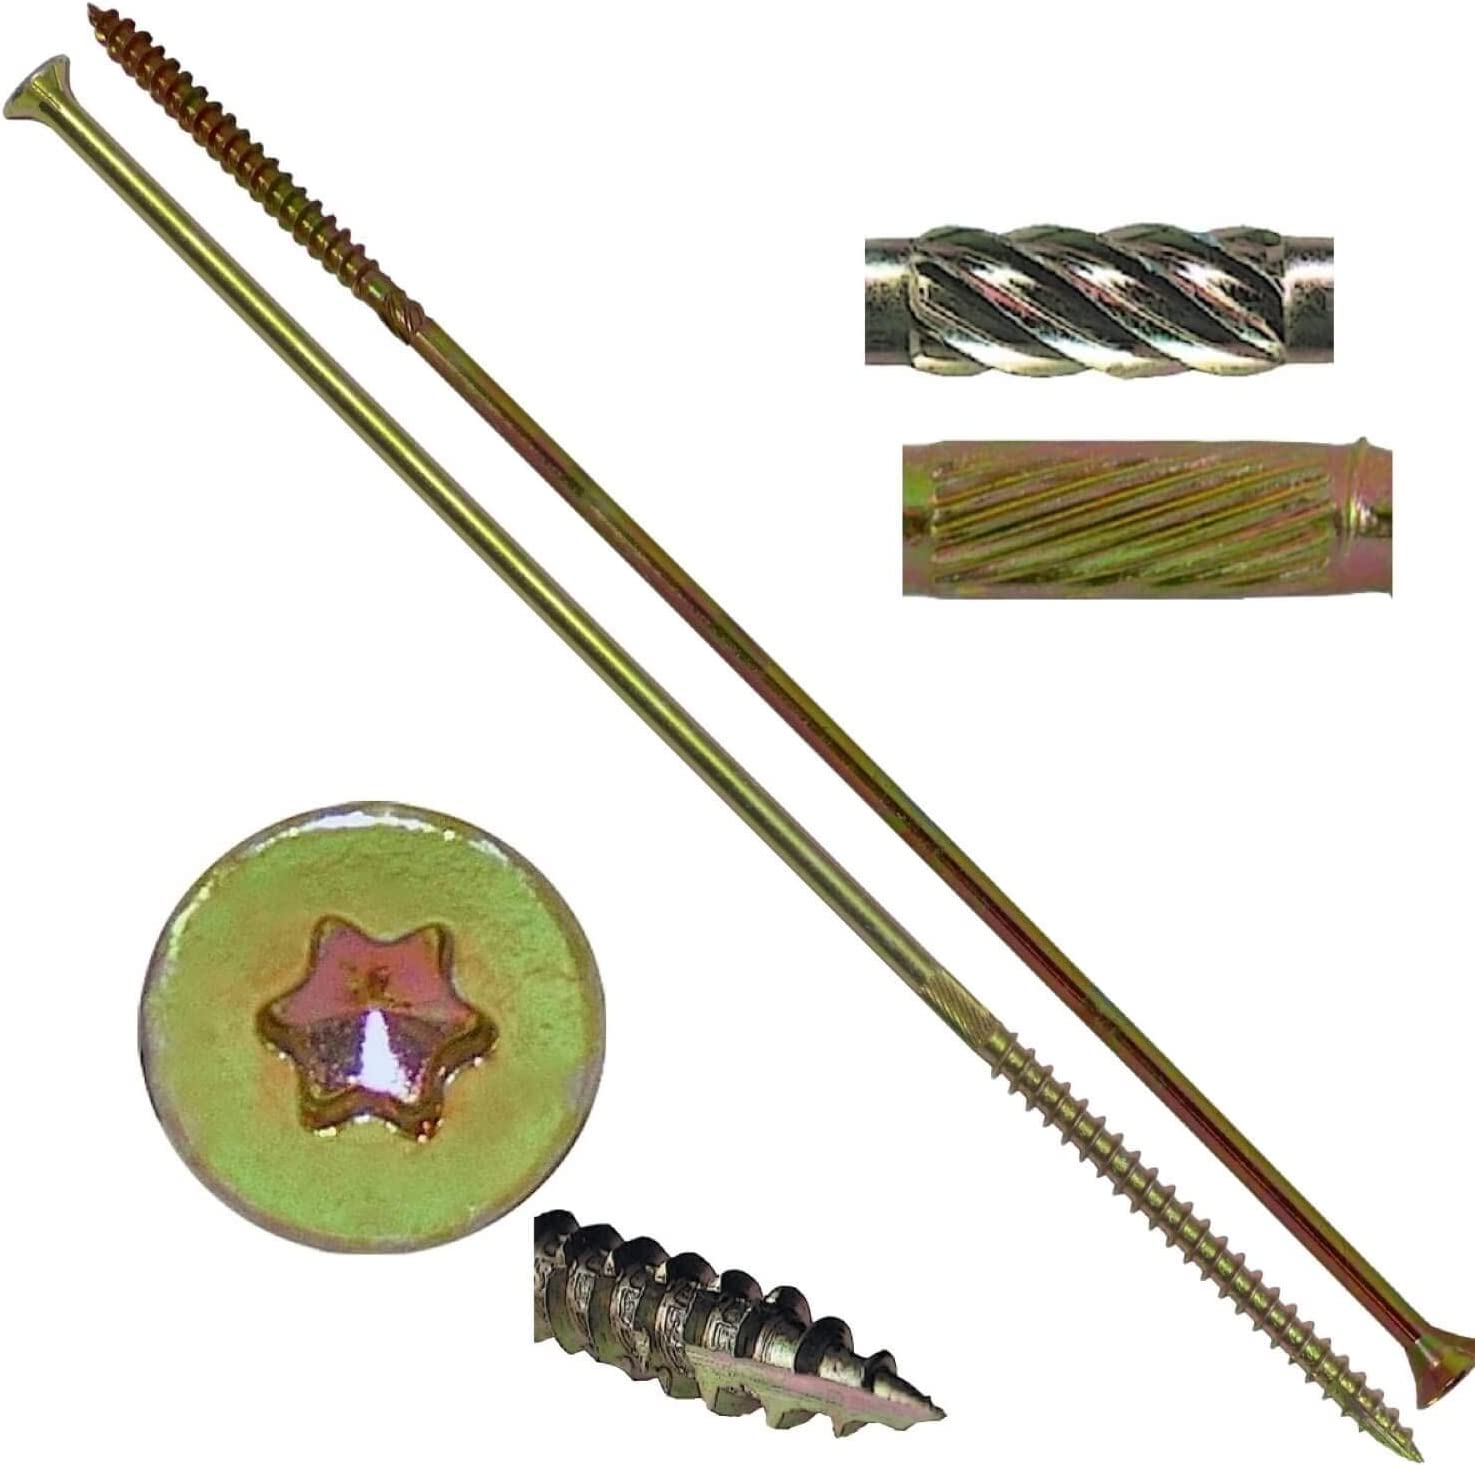 #14x8 Gold Star Wood Screw Torx//Star Drive Head 1 Pound - 19 Approx. Screw Count Multipurpose Torx//Star Drive Wood Screws